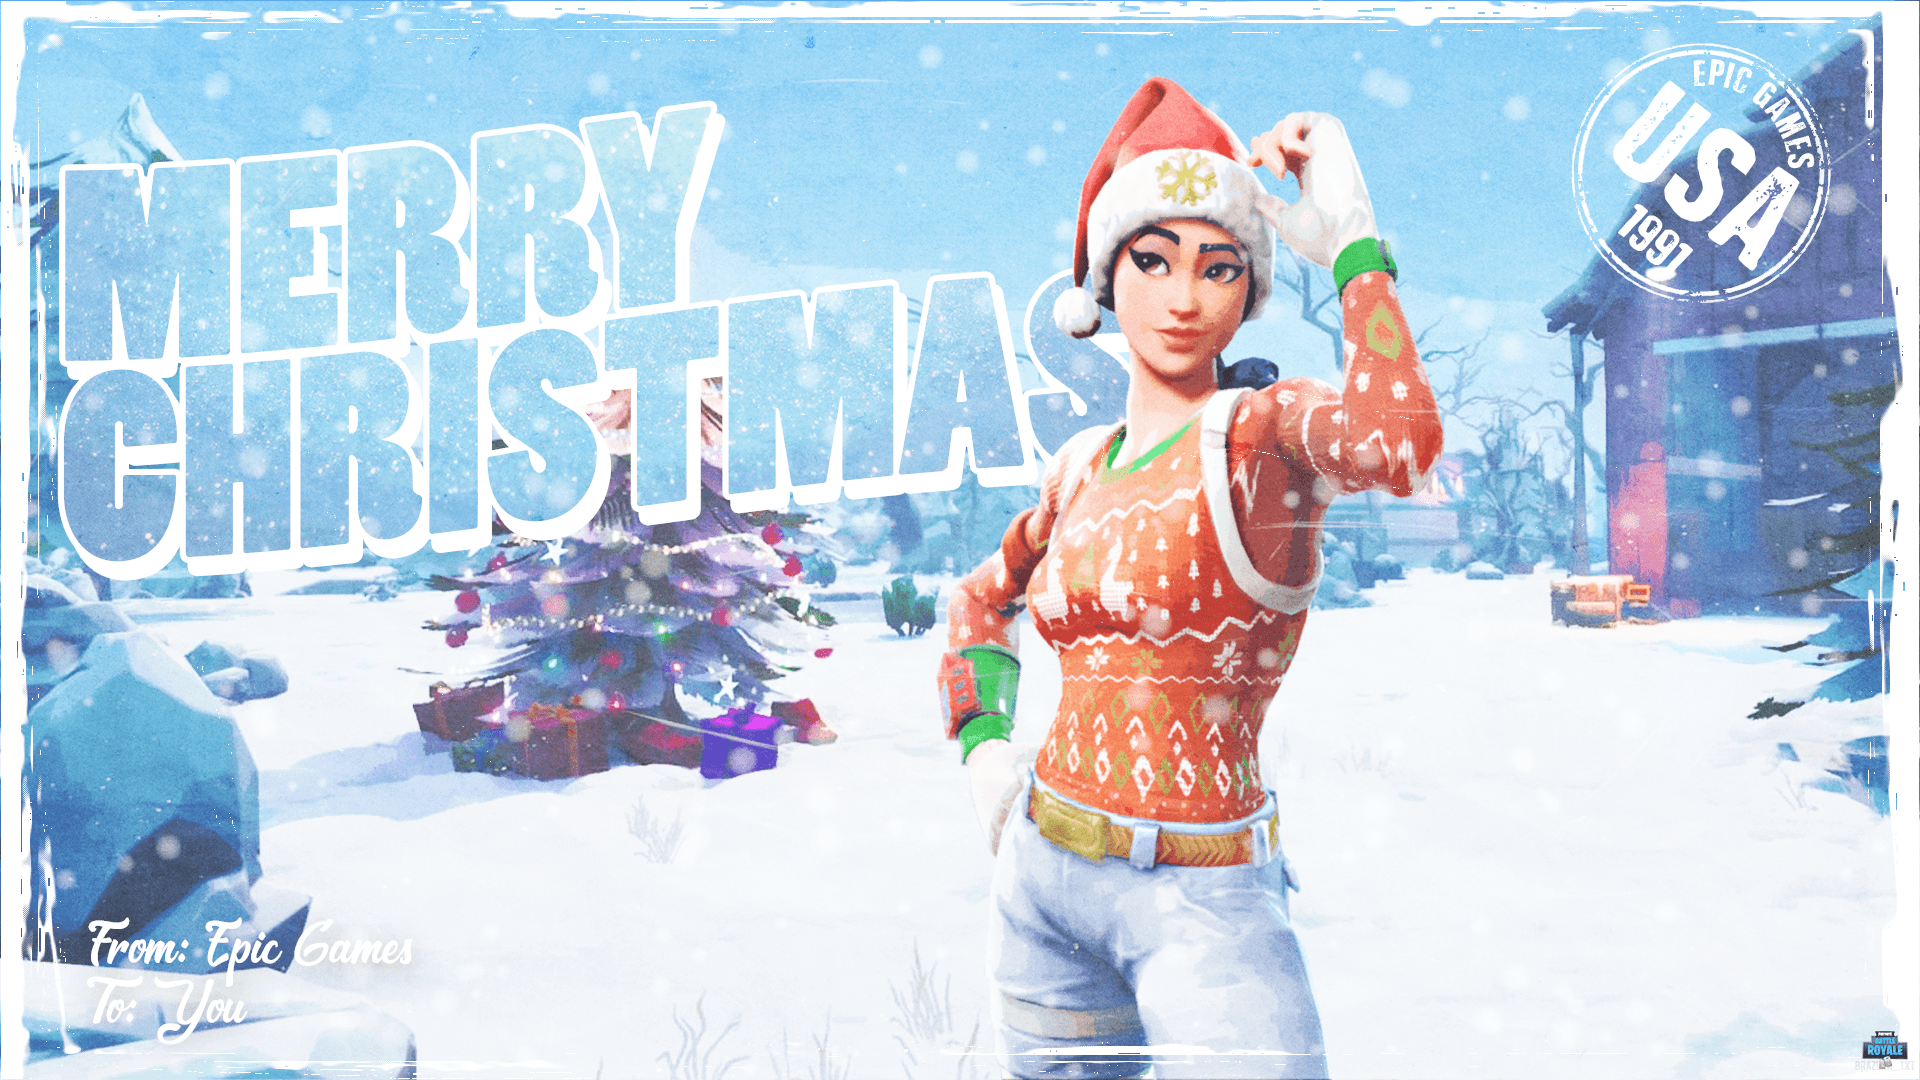 1920x1080 It S Always Christmas In Fortnite 1080p Wallpaper Fortnitebr Christmas Wallpaper 1080p Wallpaper Background Images Wallpapers